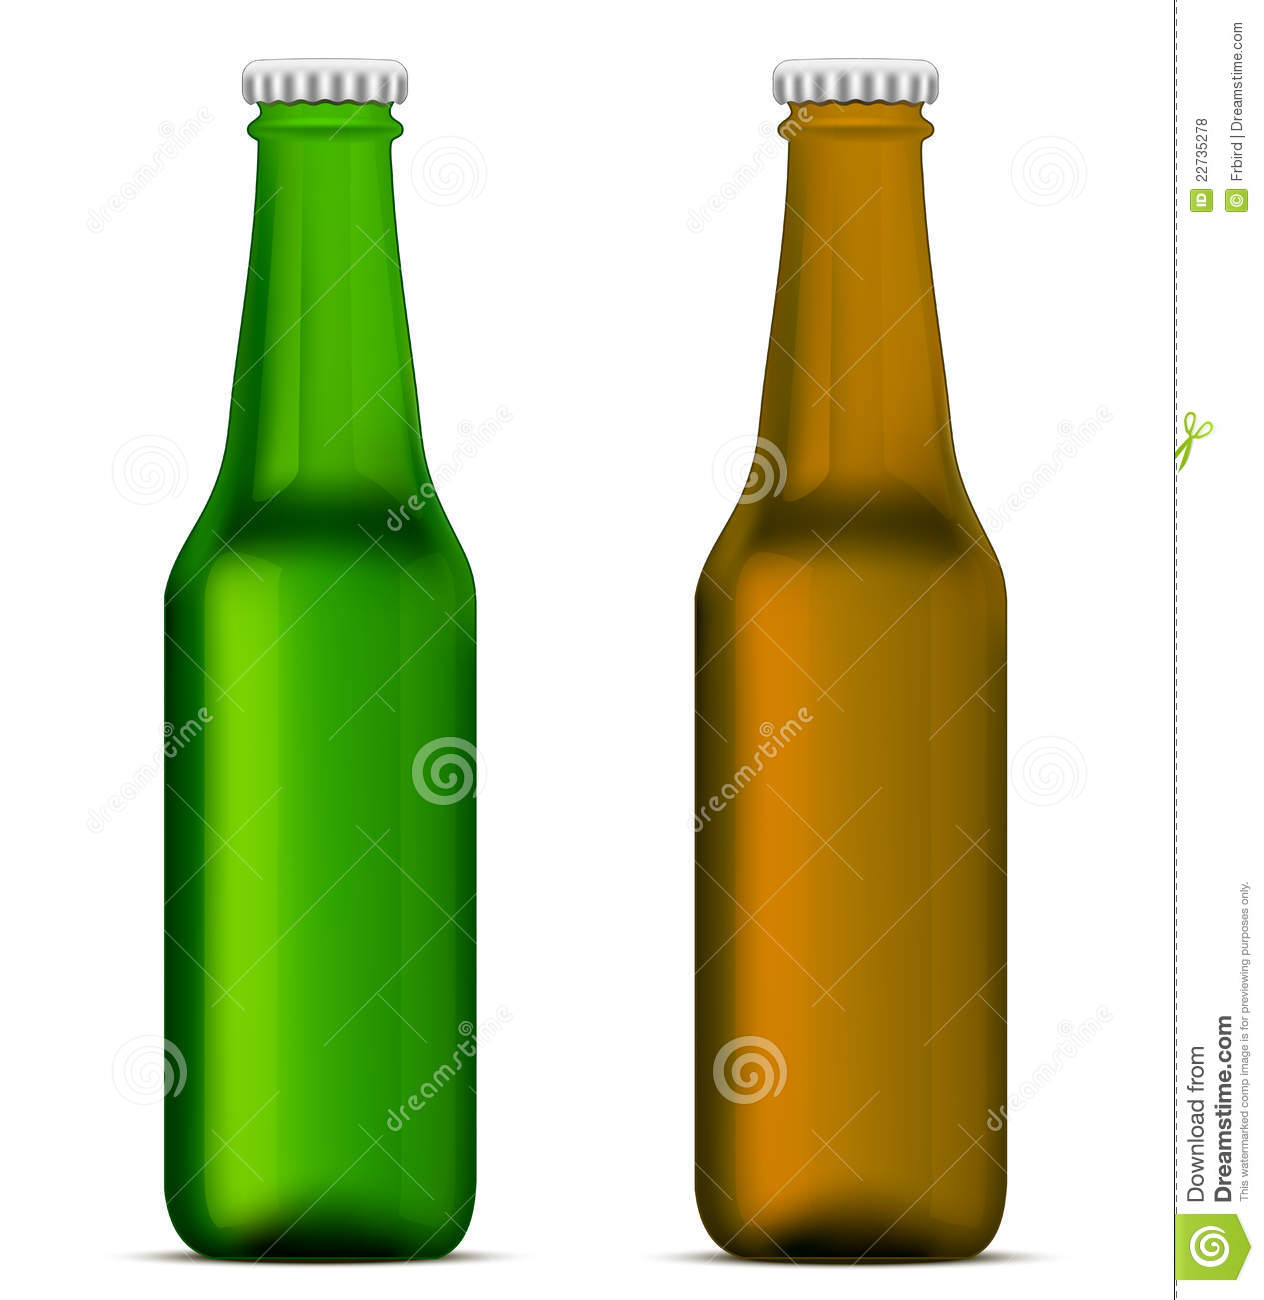 Green and brown beer bottles royalty free stock photos image